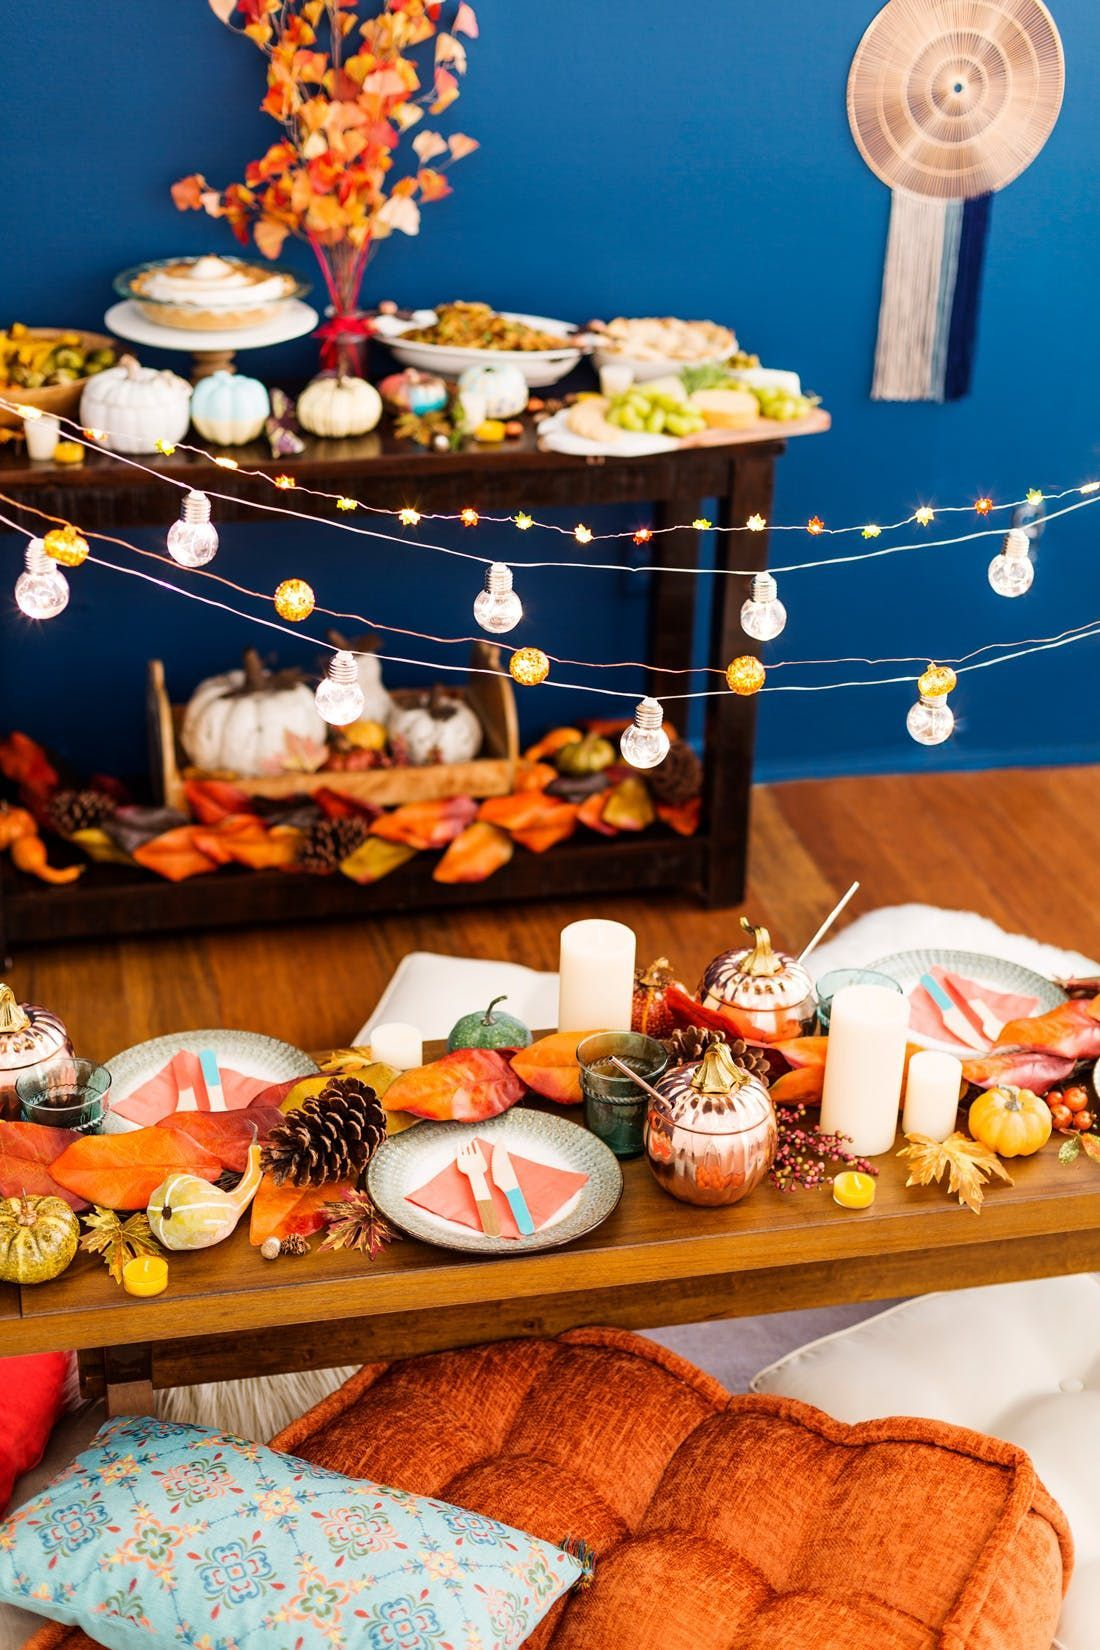 Unusual Friendsgiving Decor Ideas For Holiday Celebrating To Try25